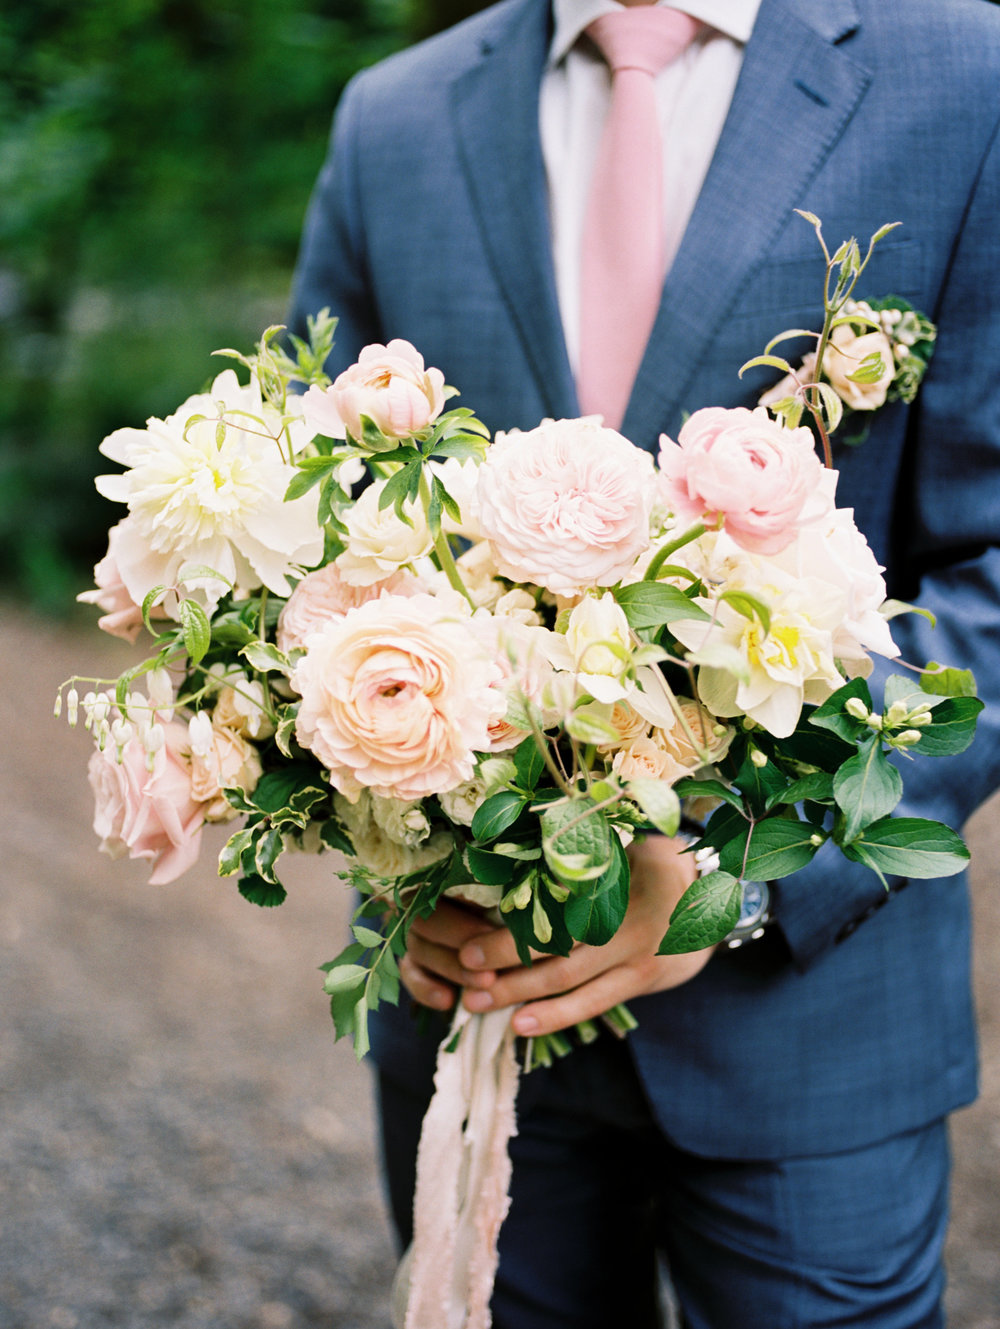 spring wedding bouquet with ranunculus and peonies.JPG